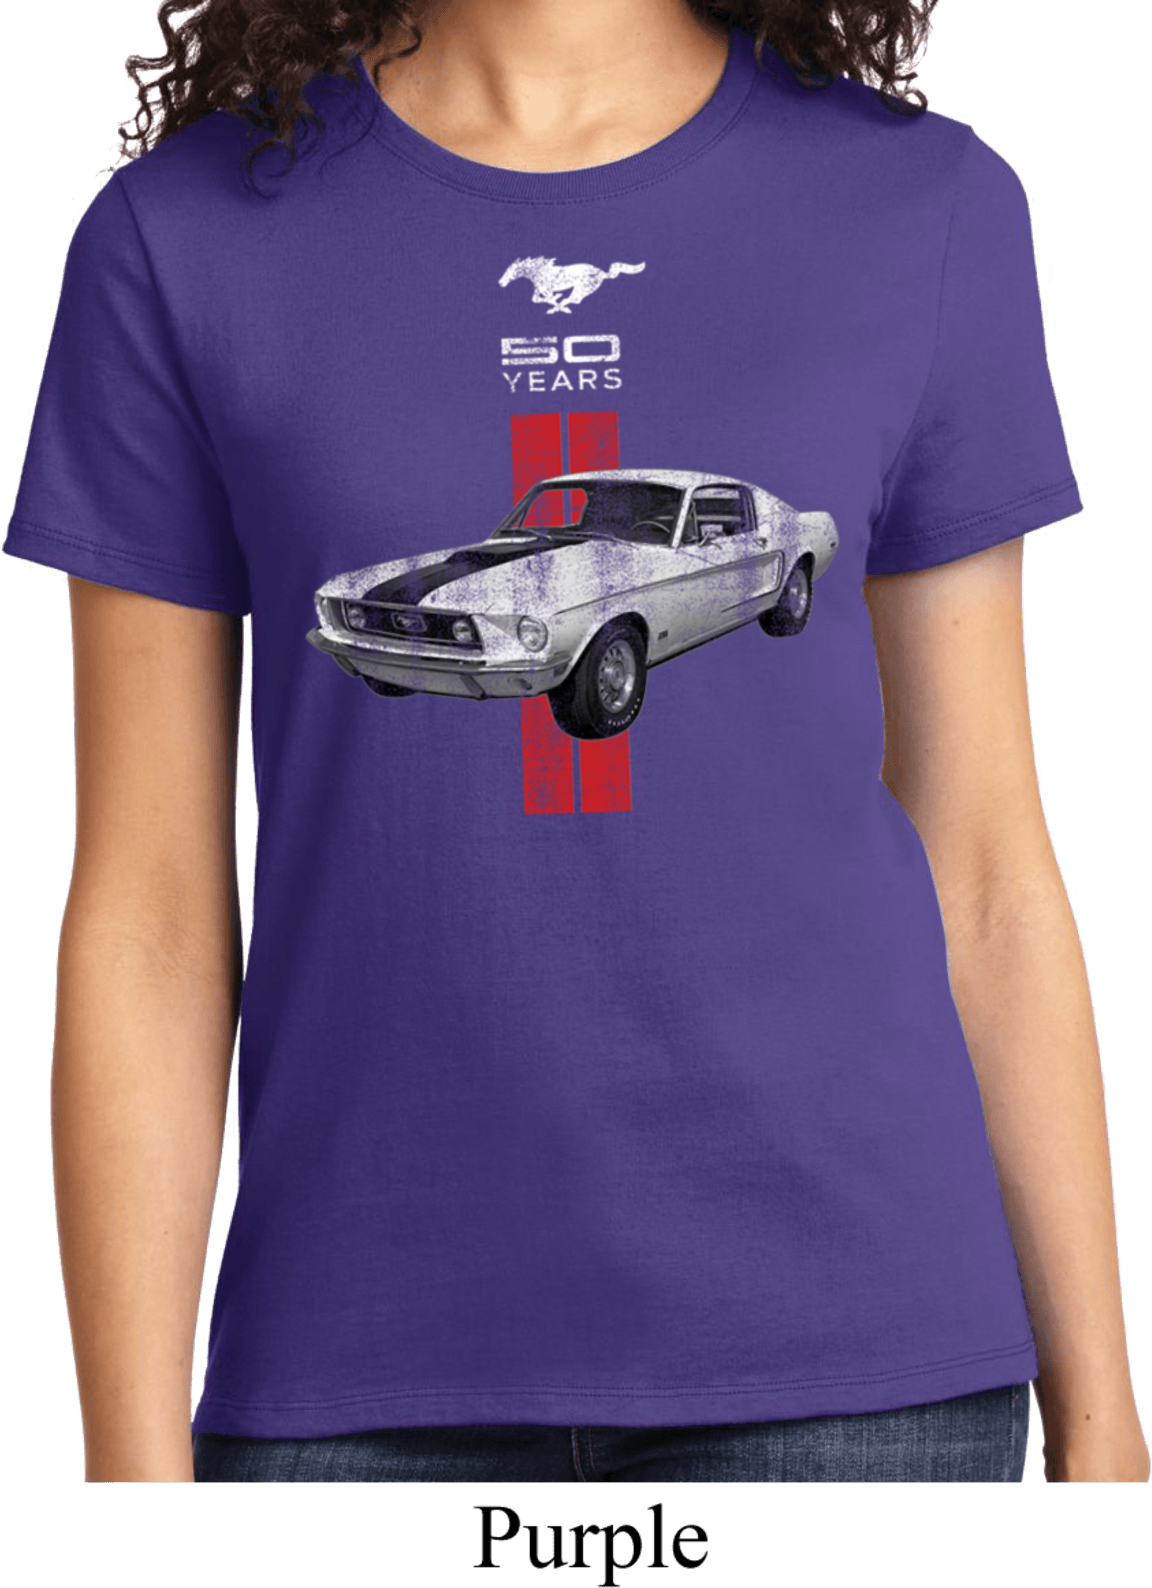 ladies ford shirt red stripe mustang 50 years tee t shirt. Black Bedroom Furniture Sets. Home Design Ideas